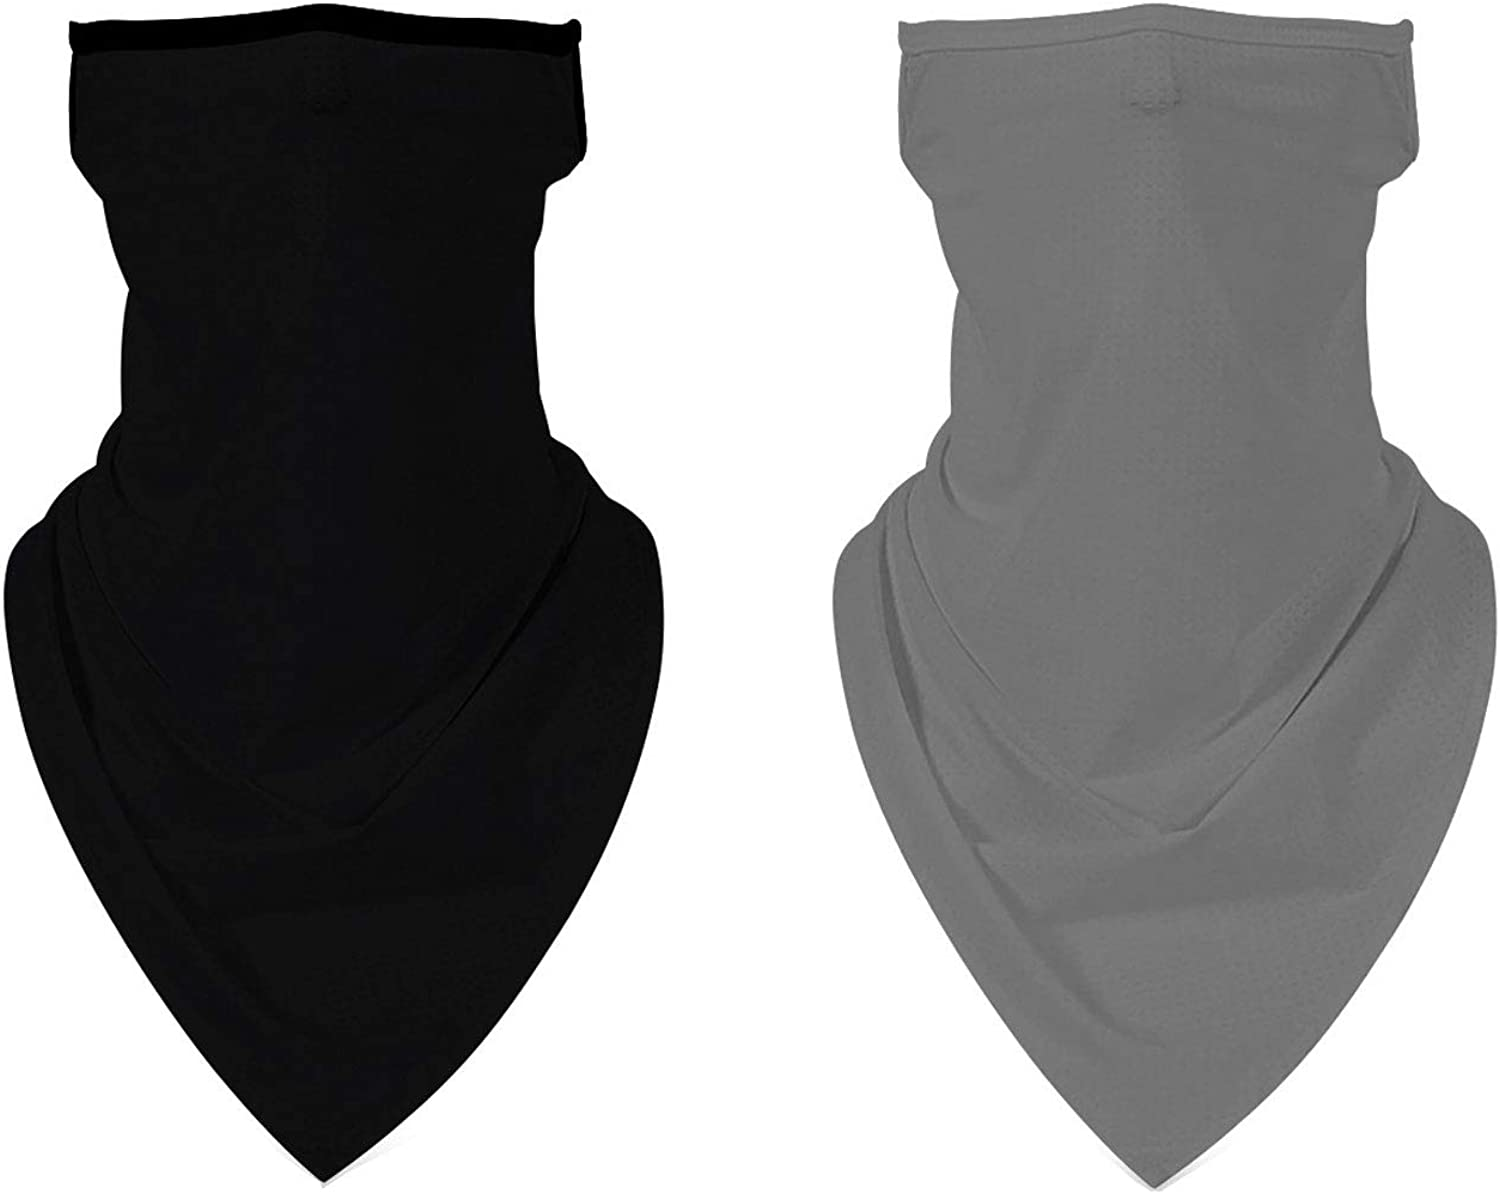 Feximzl 2 Pack Face Cover Bandana Ear Loops Men Women Neck Gaiters for Dust Wind Motorcycle Cool Lightweight